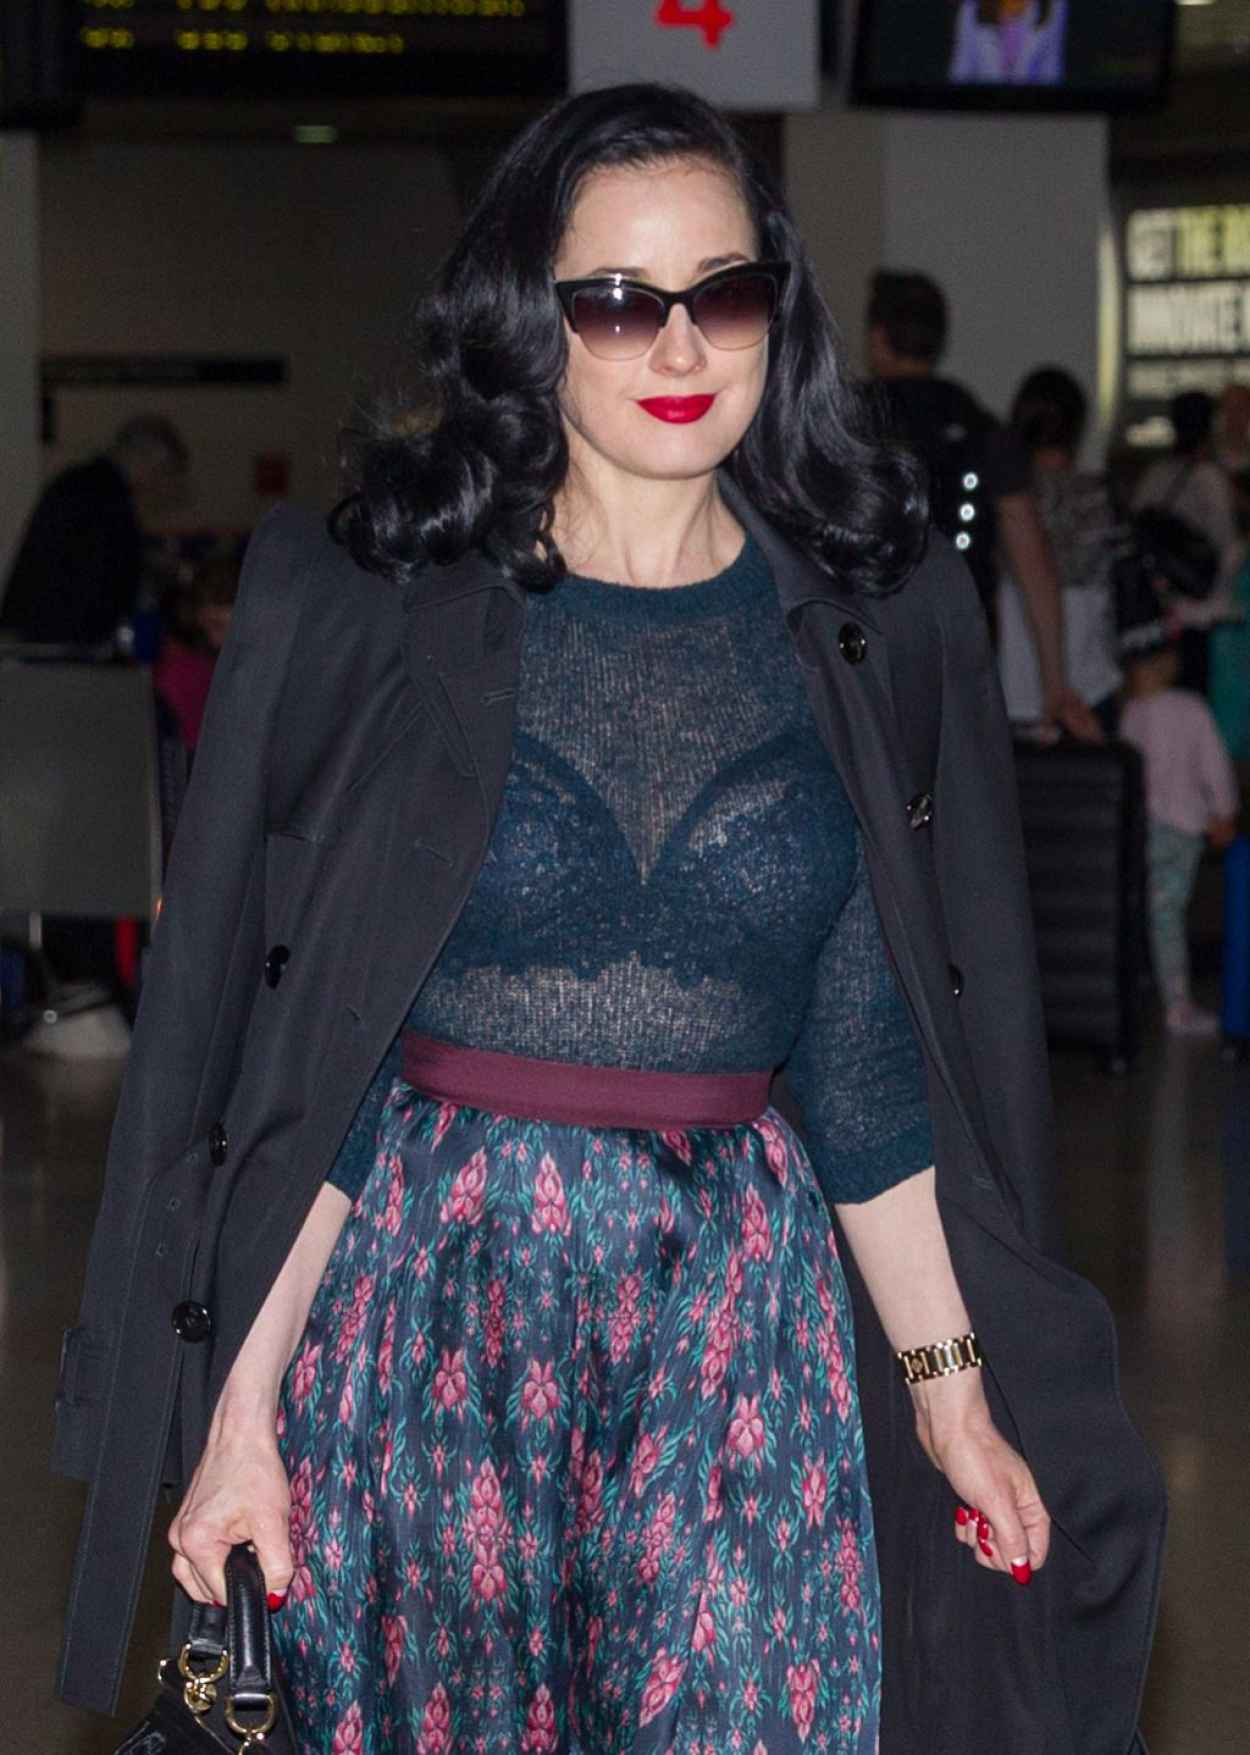 Dita Von Teese - Wearing Blue Top, Blue Skirt and a Large Black Coat - Melbourne Airport-3